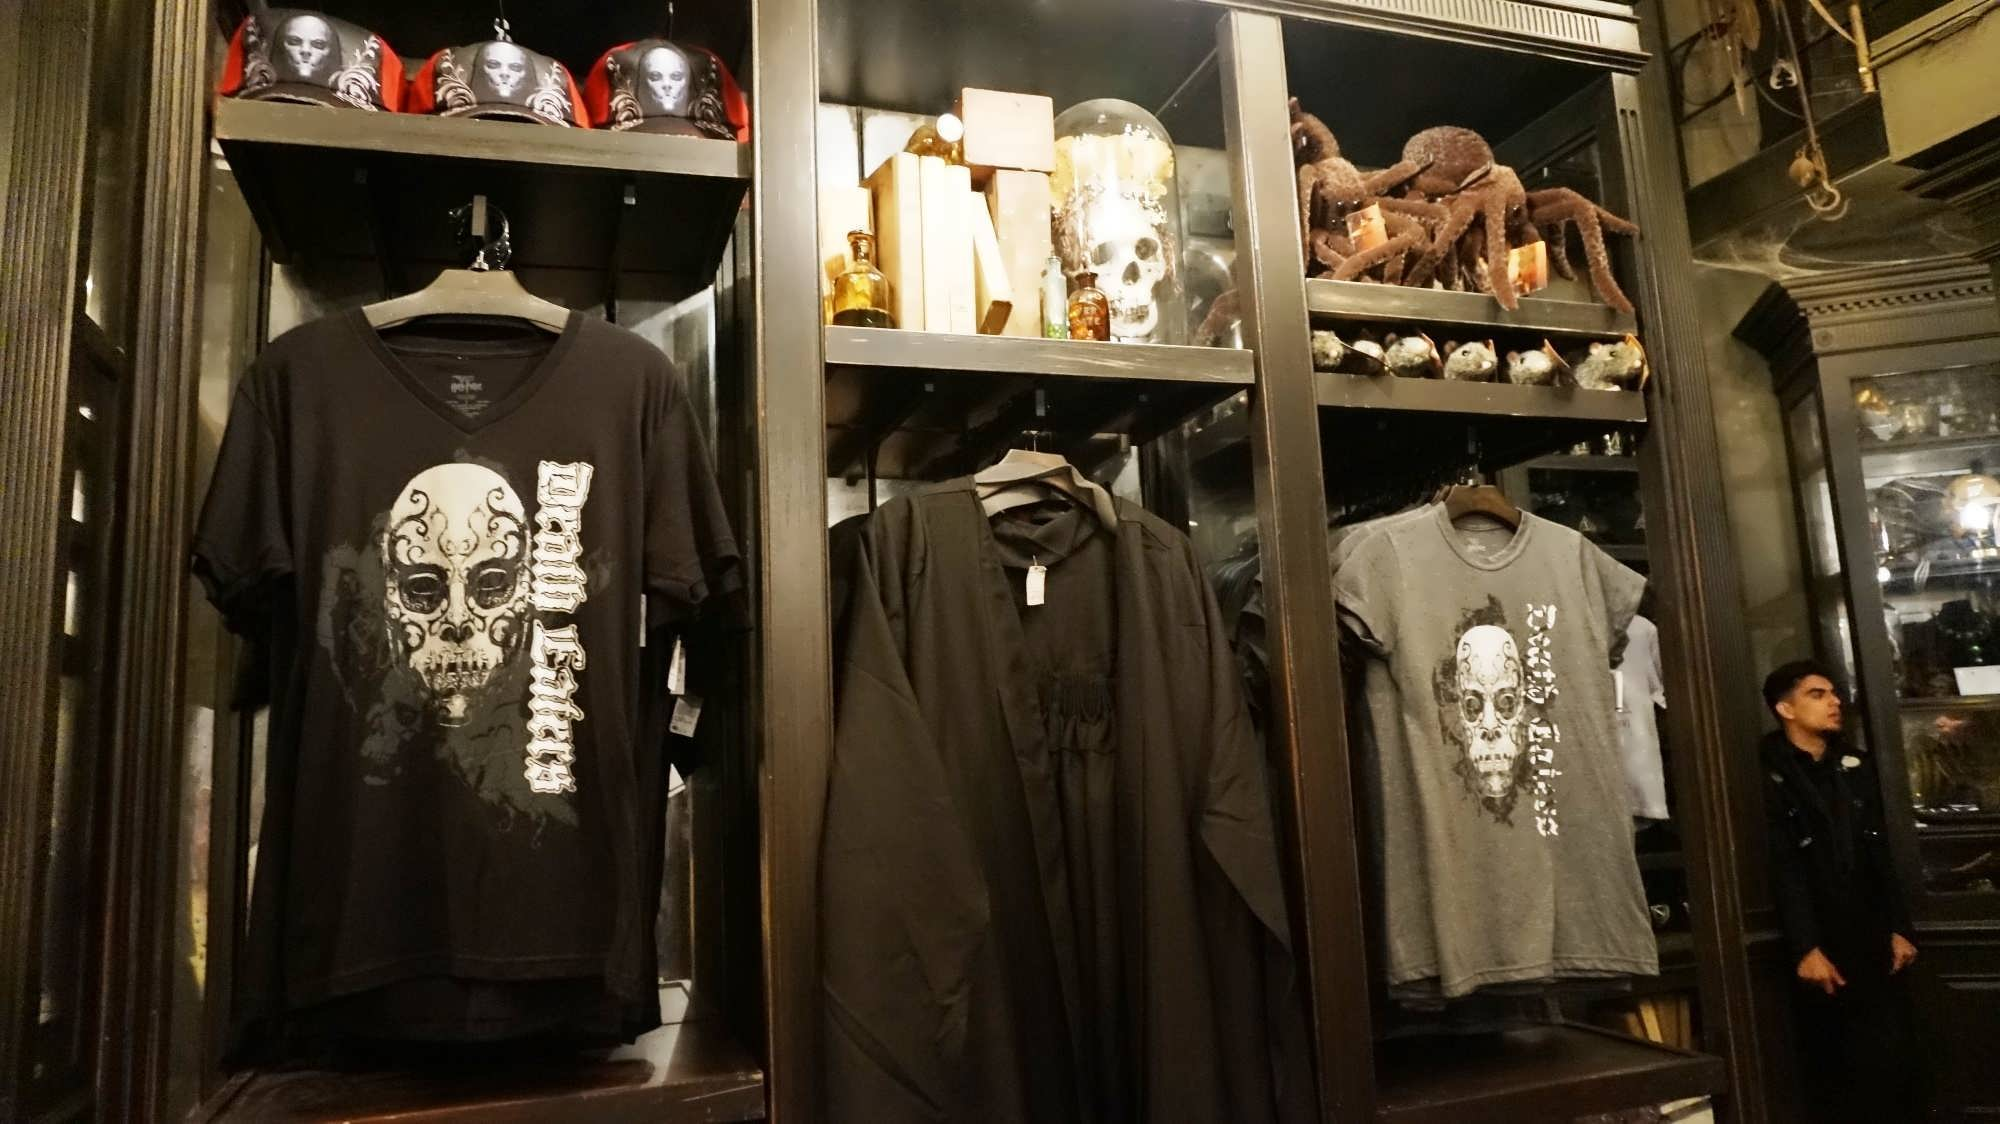 Borgin and Burkes merchandise at the Wizarding World of Harry Potter - Diagon Alley